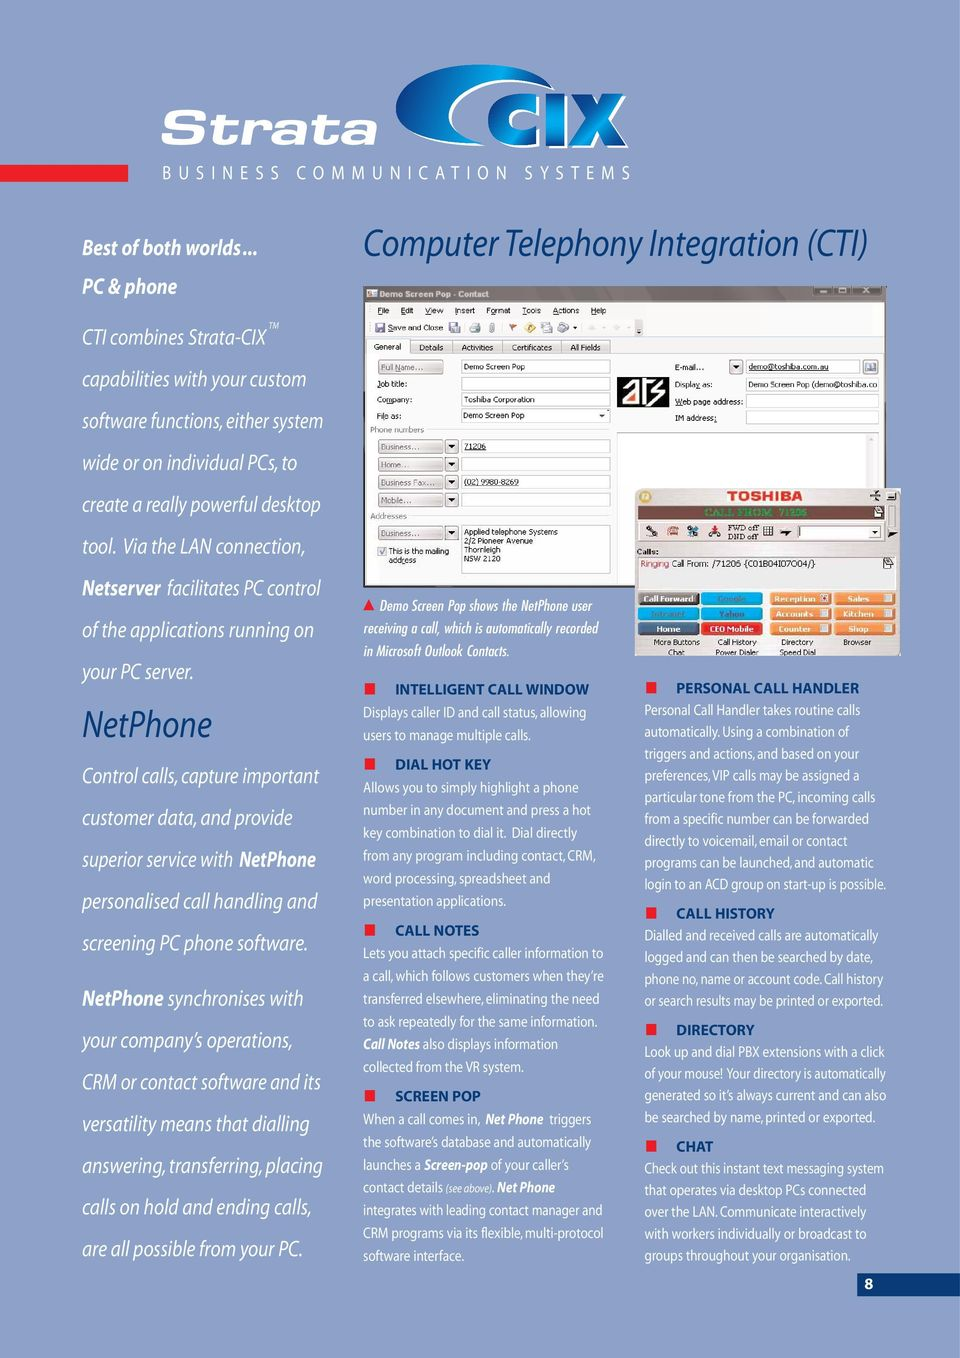 desktop tool. Via the LAN connection, Netserver facilitates PC control of the applications running on your PC server.